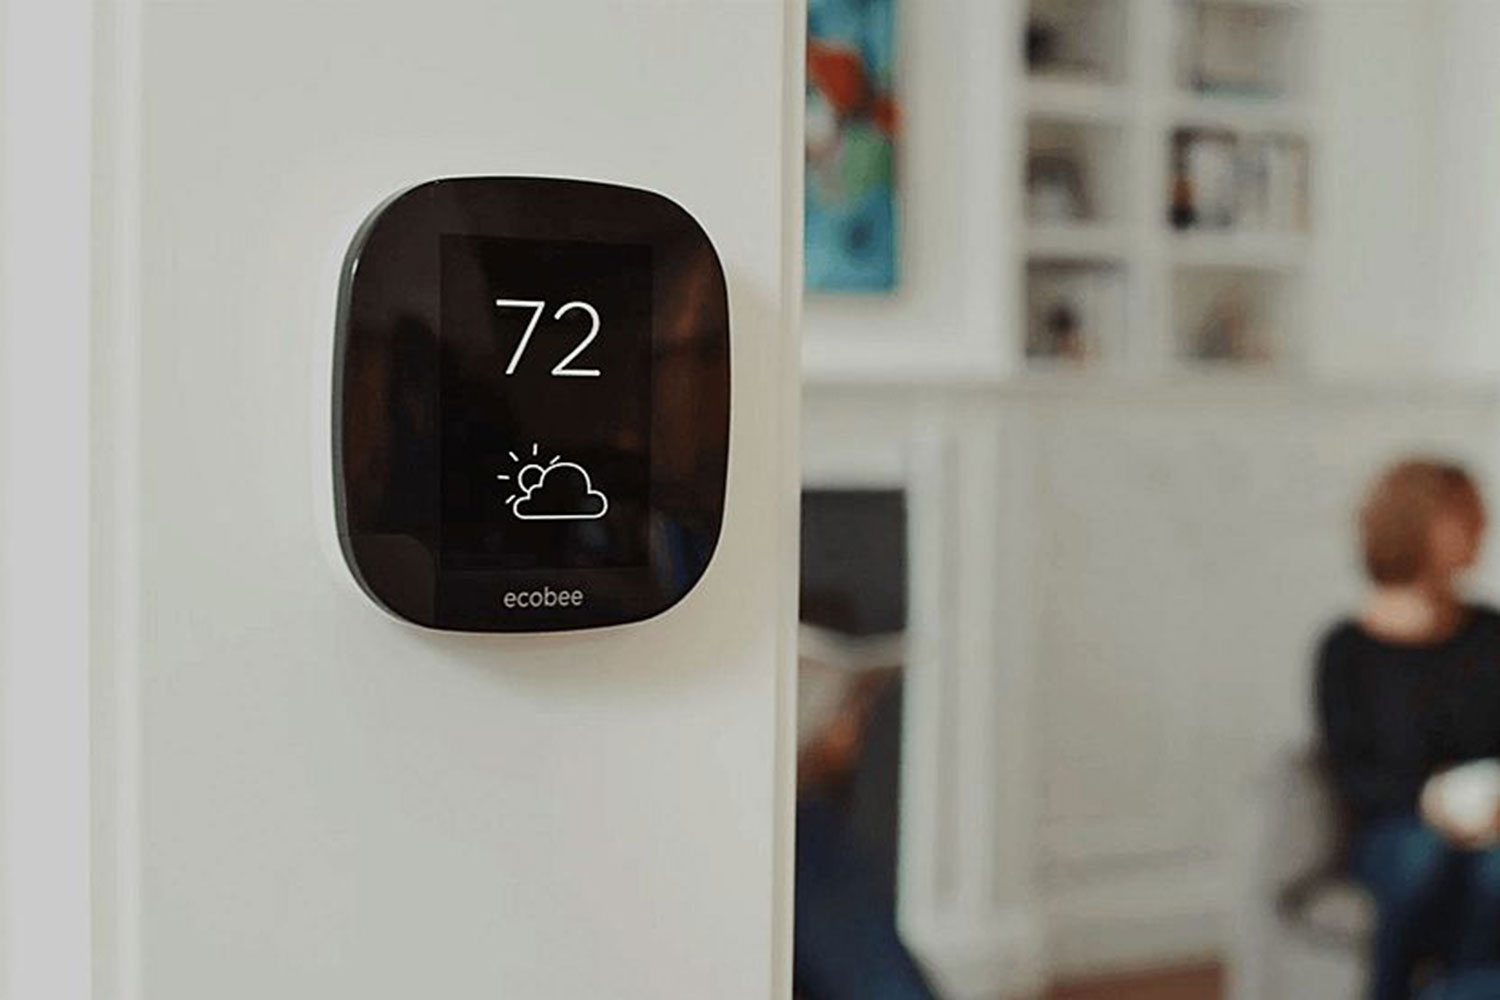 Next Ecobee smart thermostat rumored to feature Alexa ...